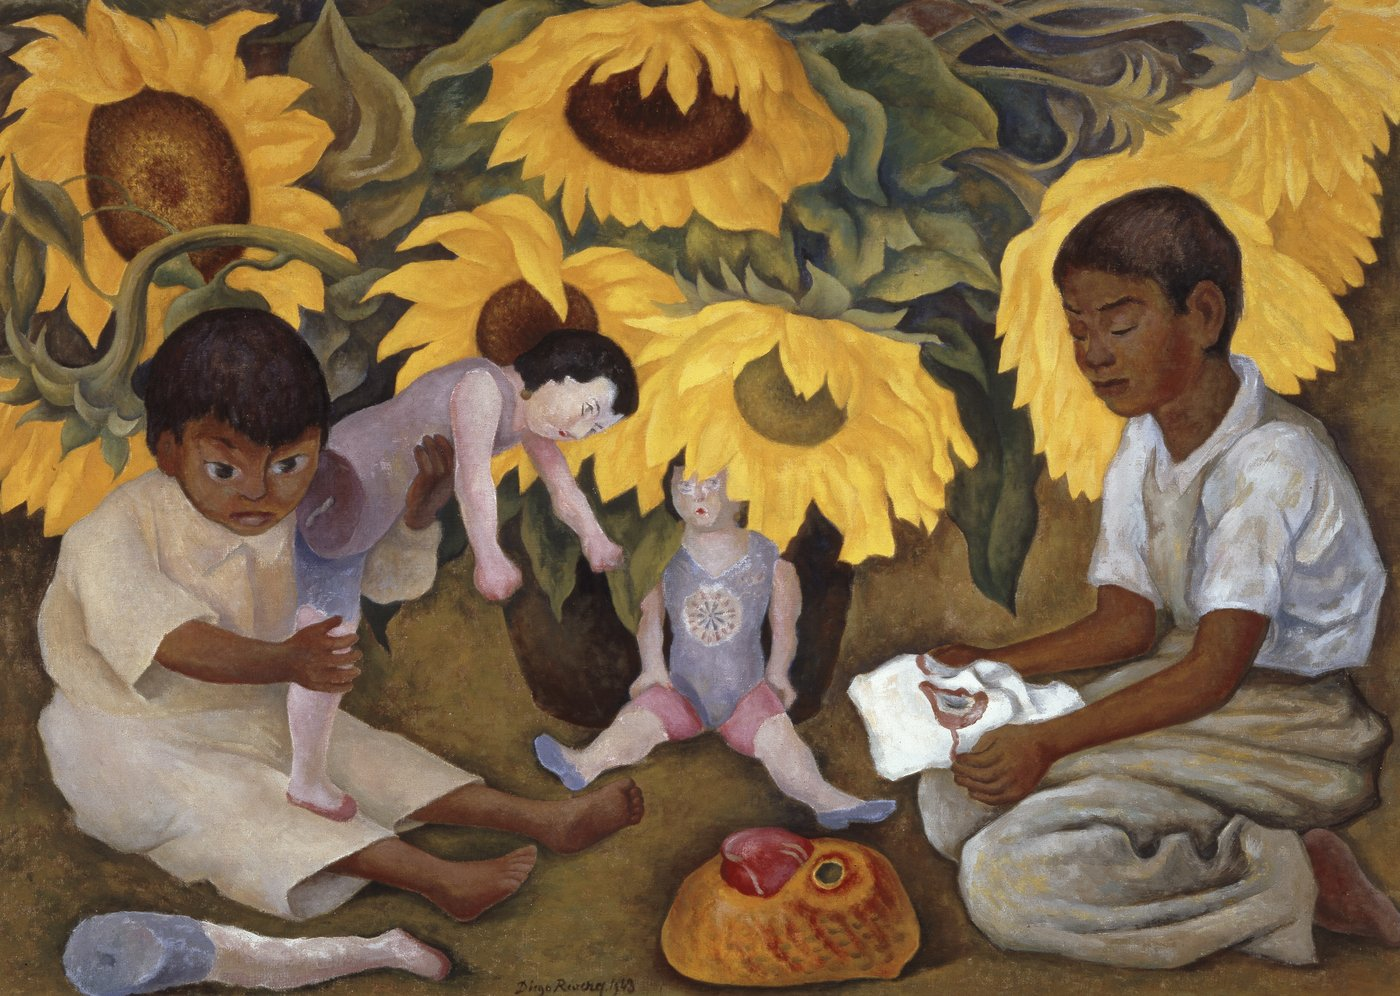 Frida kahlo and diego rivera art gallery nsw for Diego rivera s most famous mural